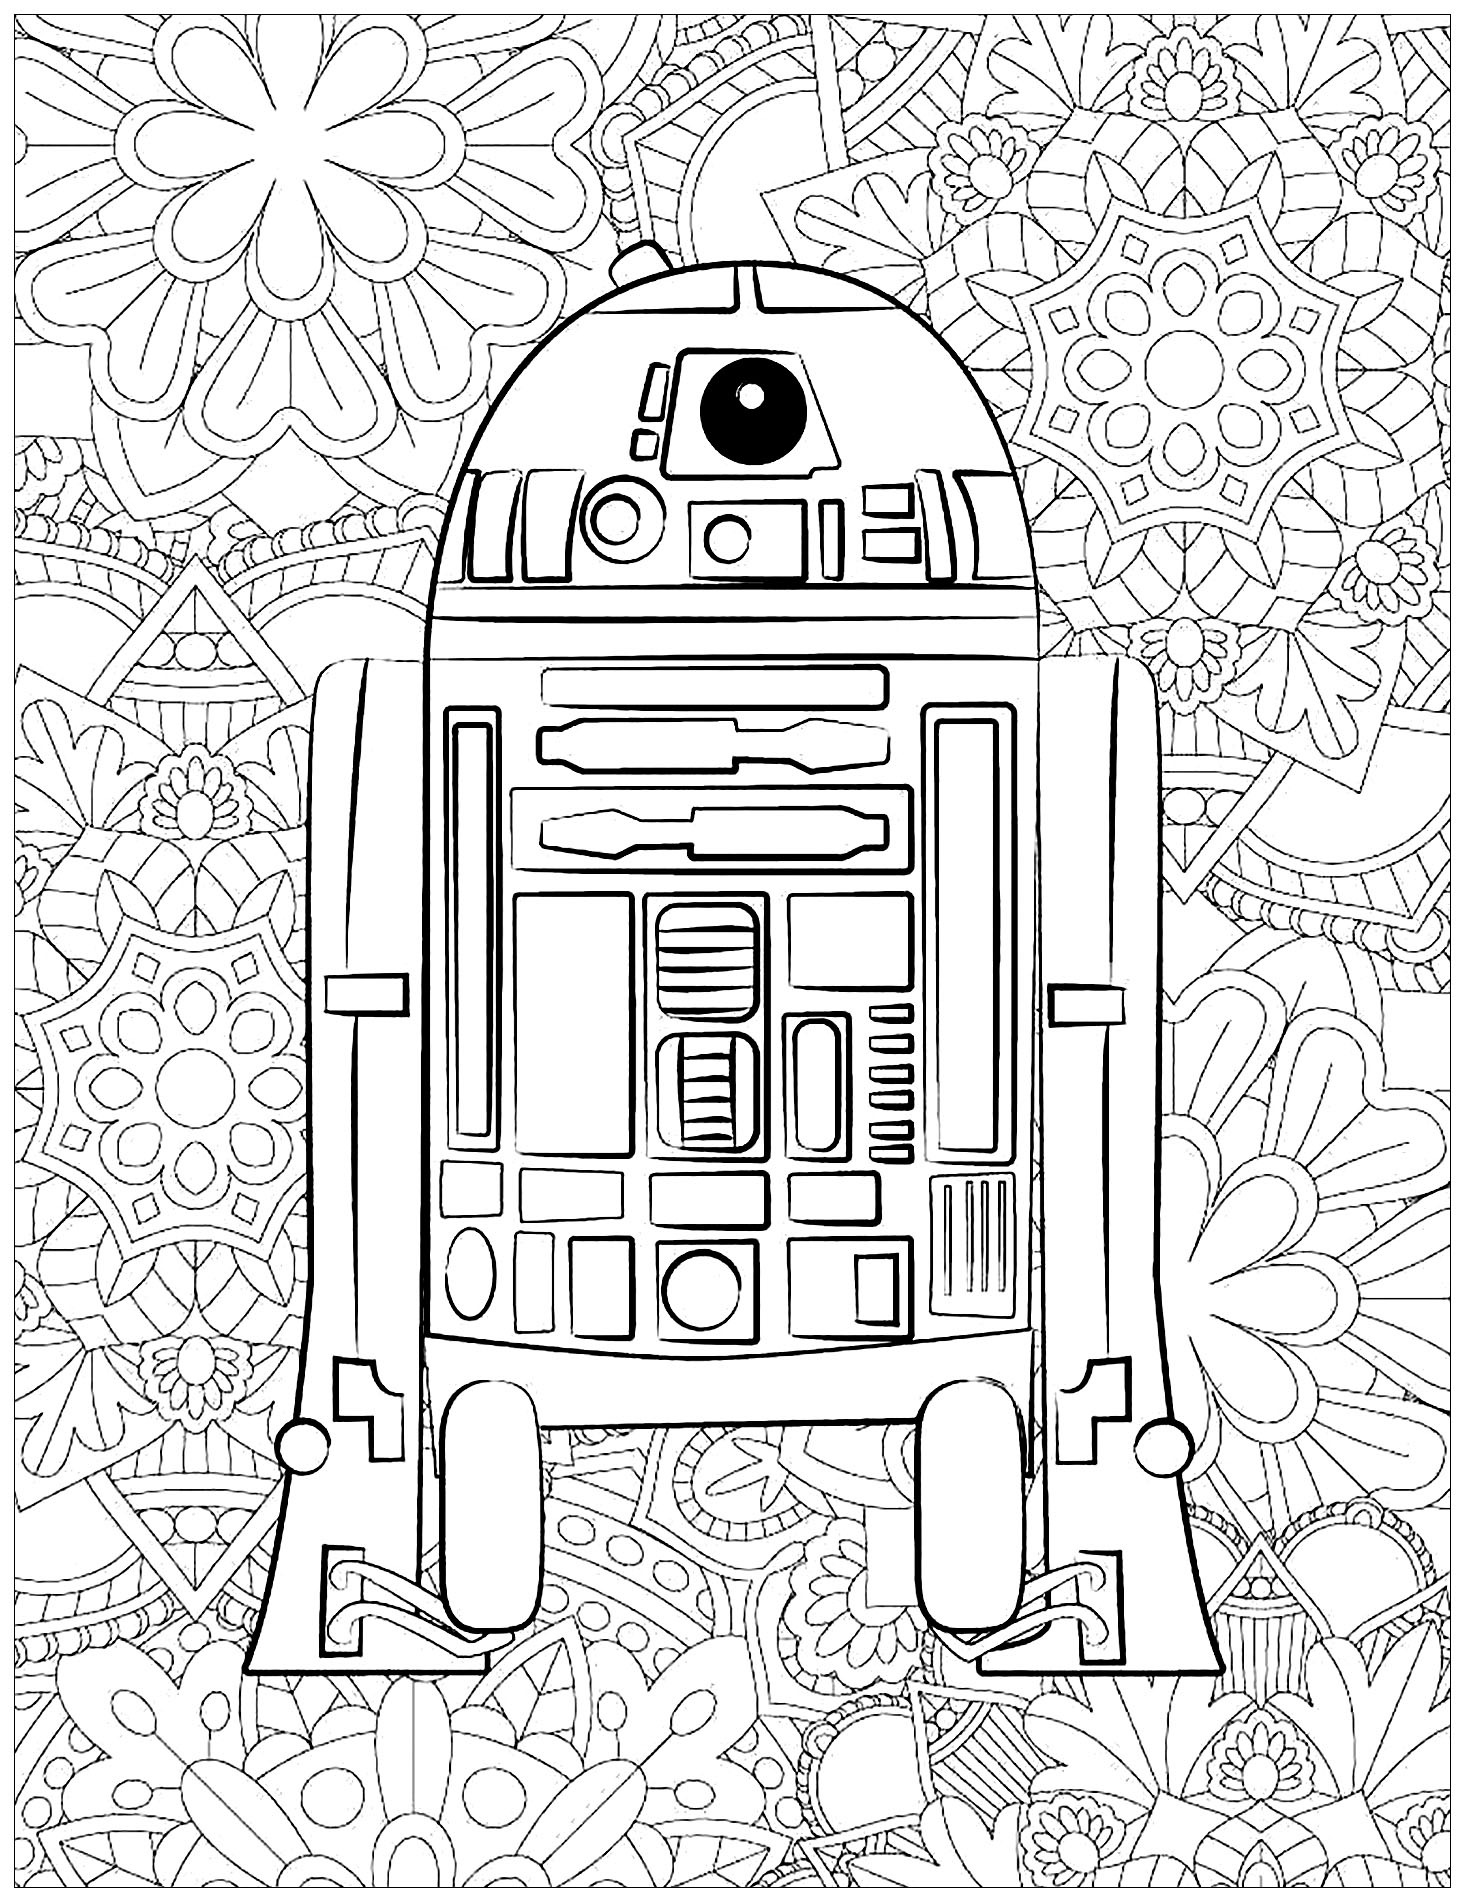 star wars pictures to print top 25 free printable star wars coloring pages online print wars star pictures to